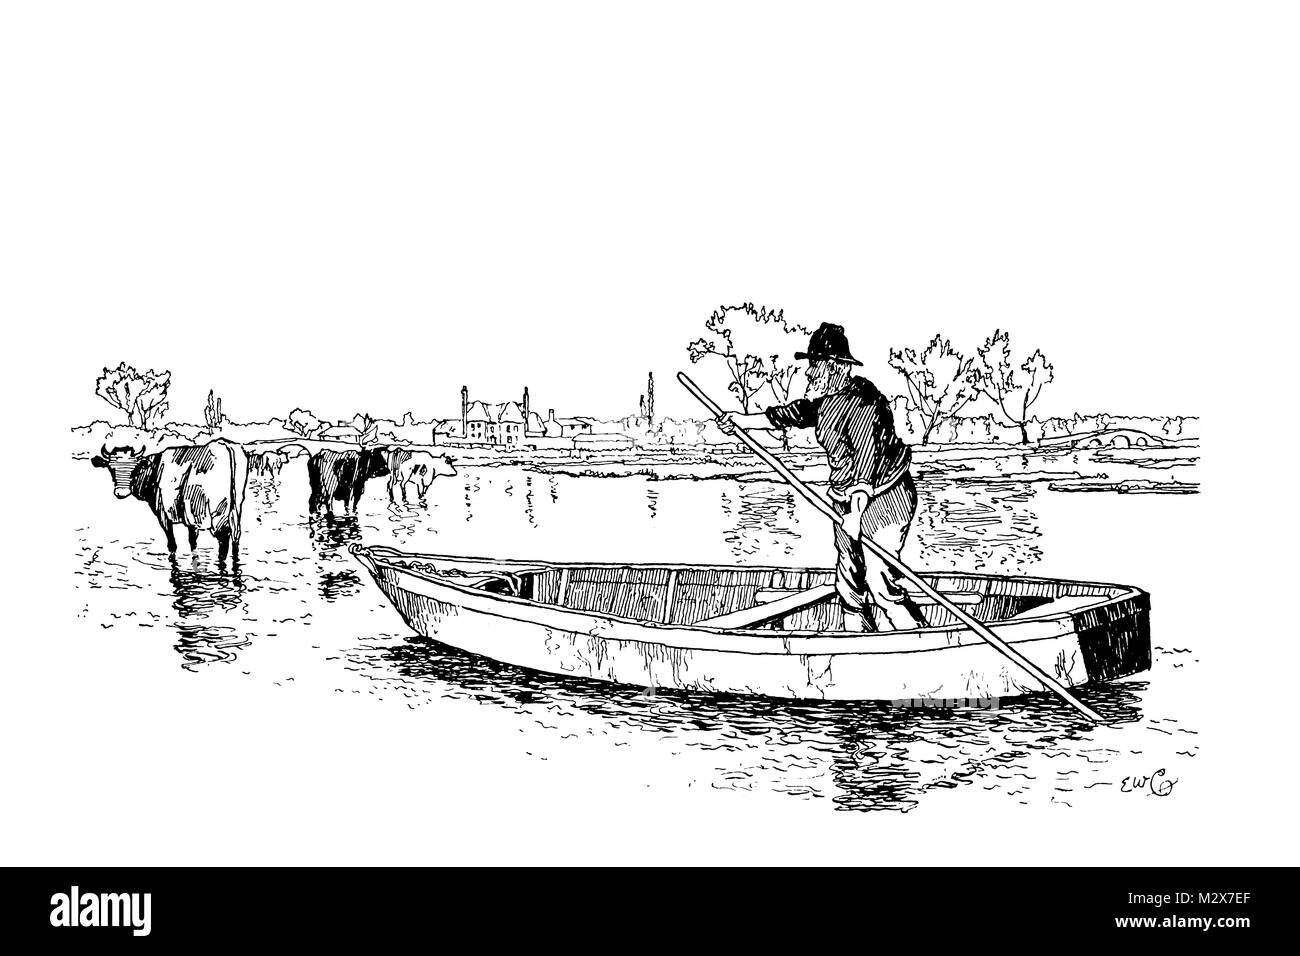 Ringwood Water Meadows, line illustration by Edward William Charlton from 1895 The Studio an Illustrated Magazine - Stock Image